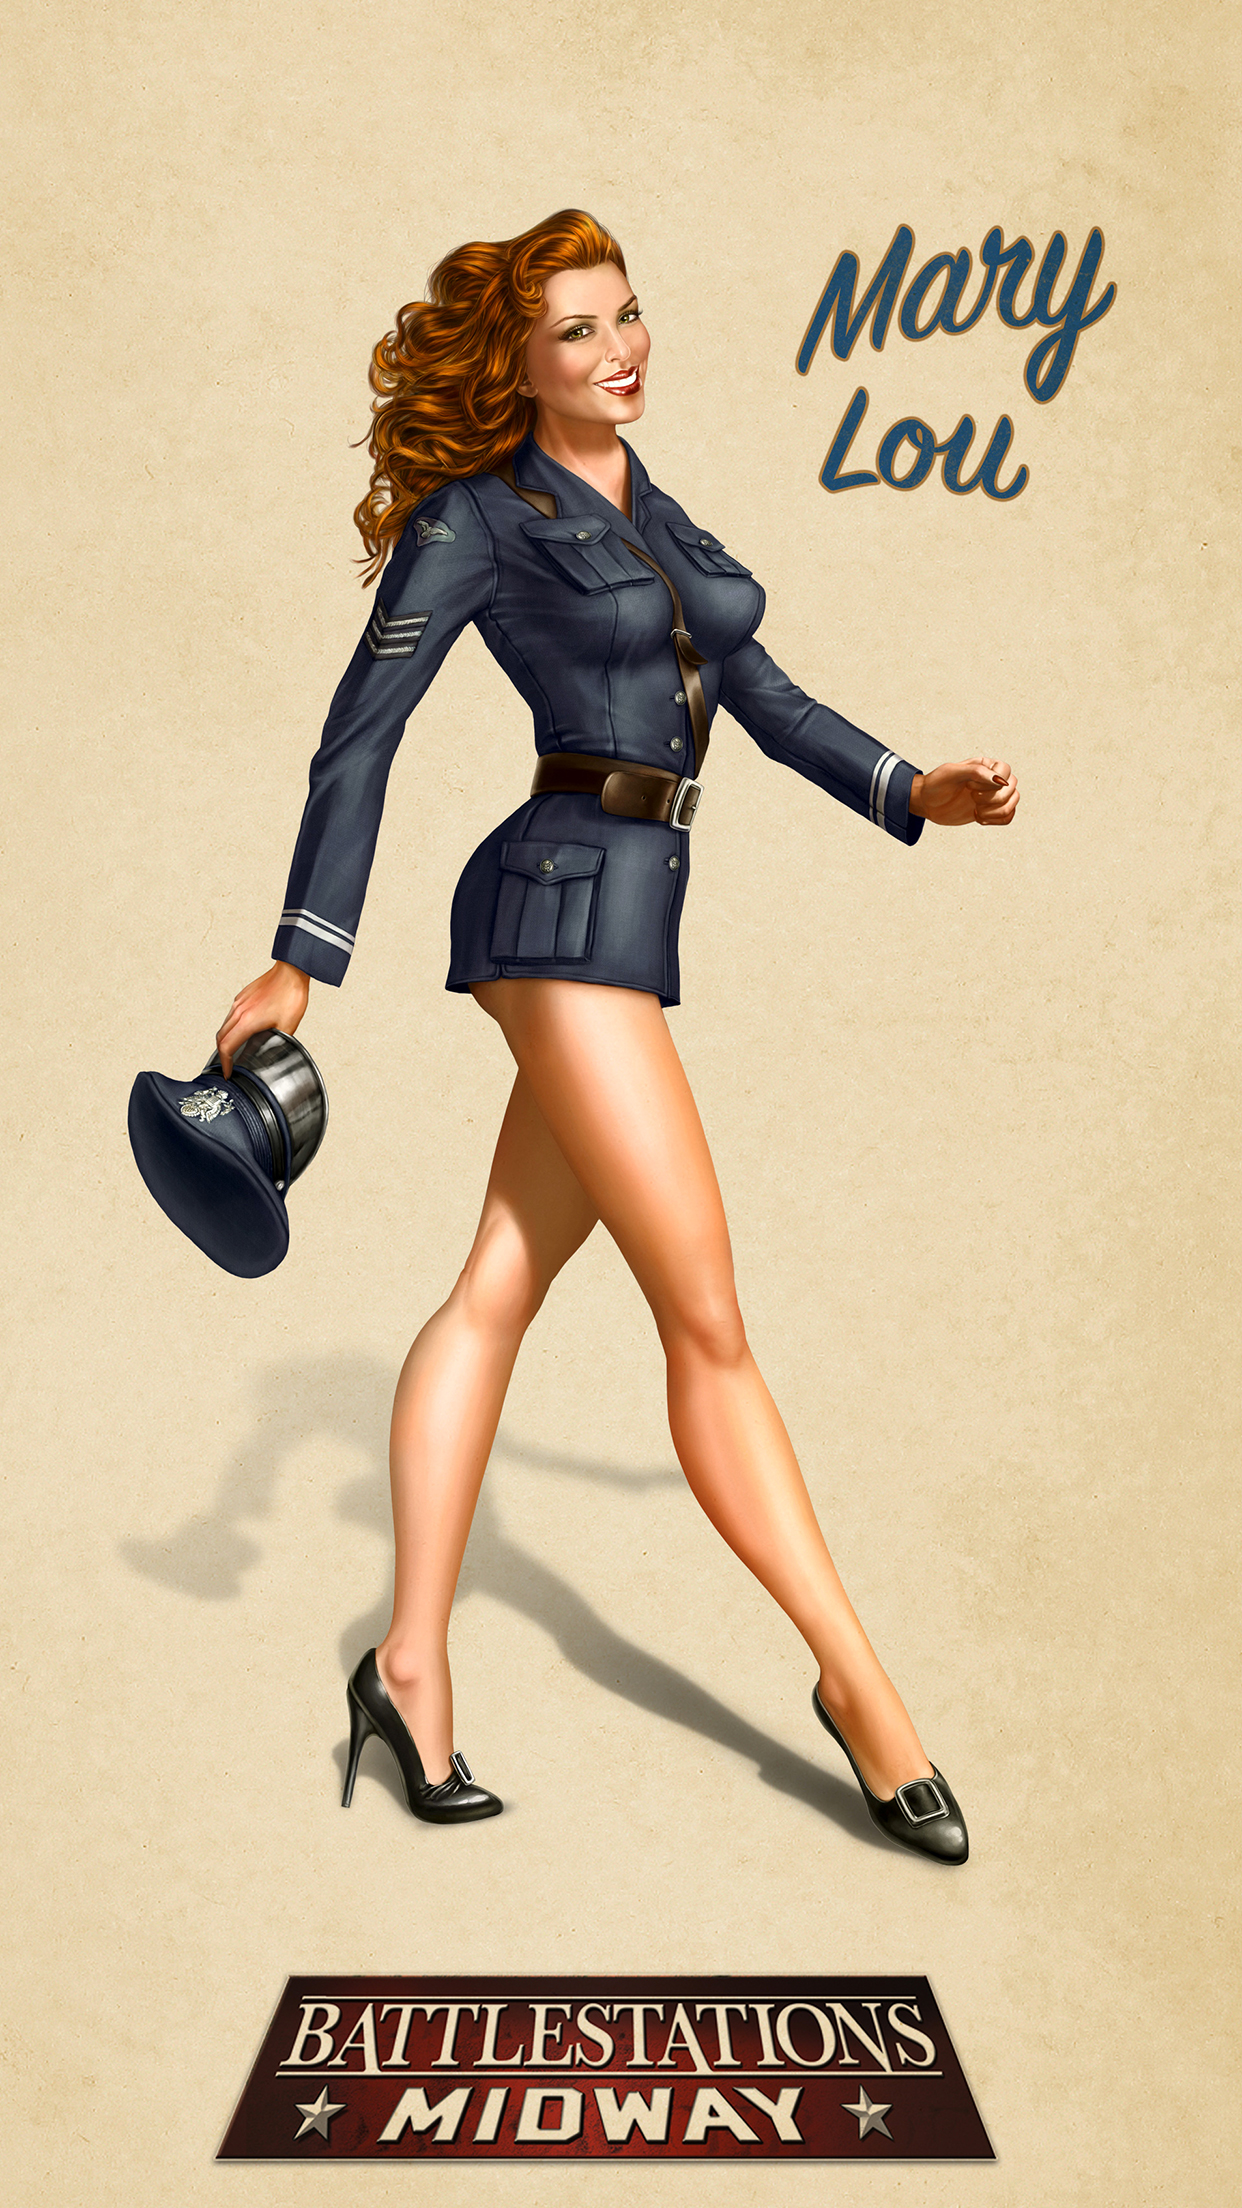 Ww2 Pin Up Girl Wallpaper Pin Up Mary Lou Wallpaper For Iphone X 8 7 6 Free